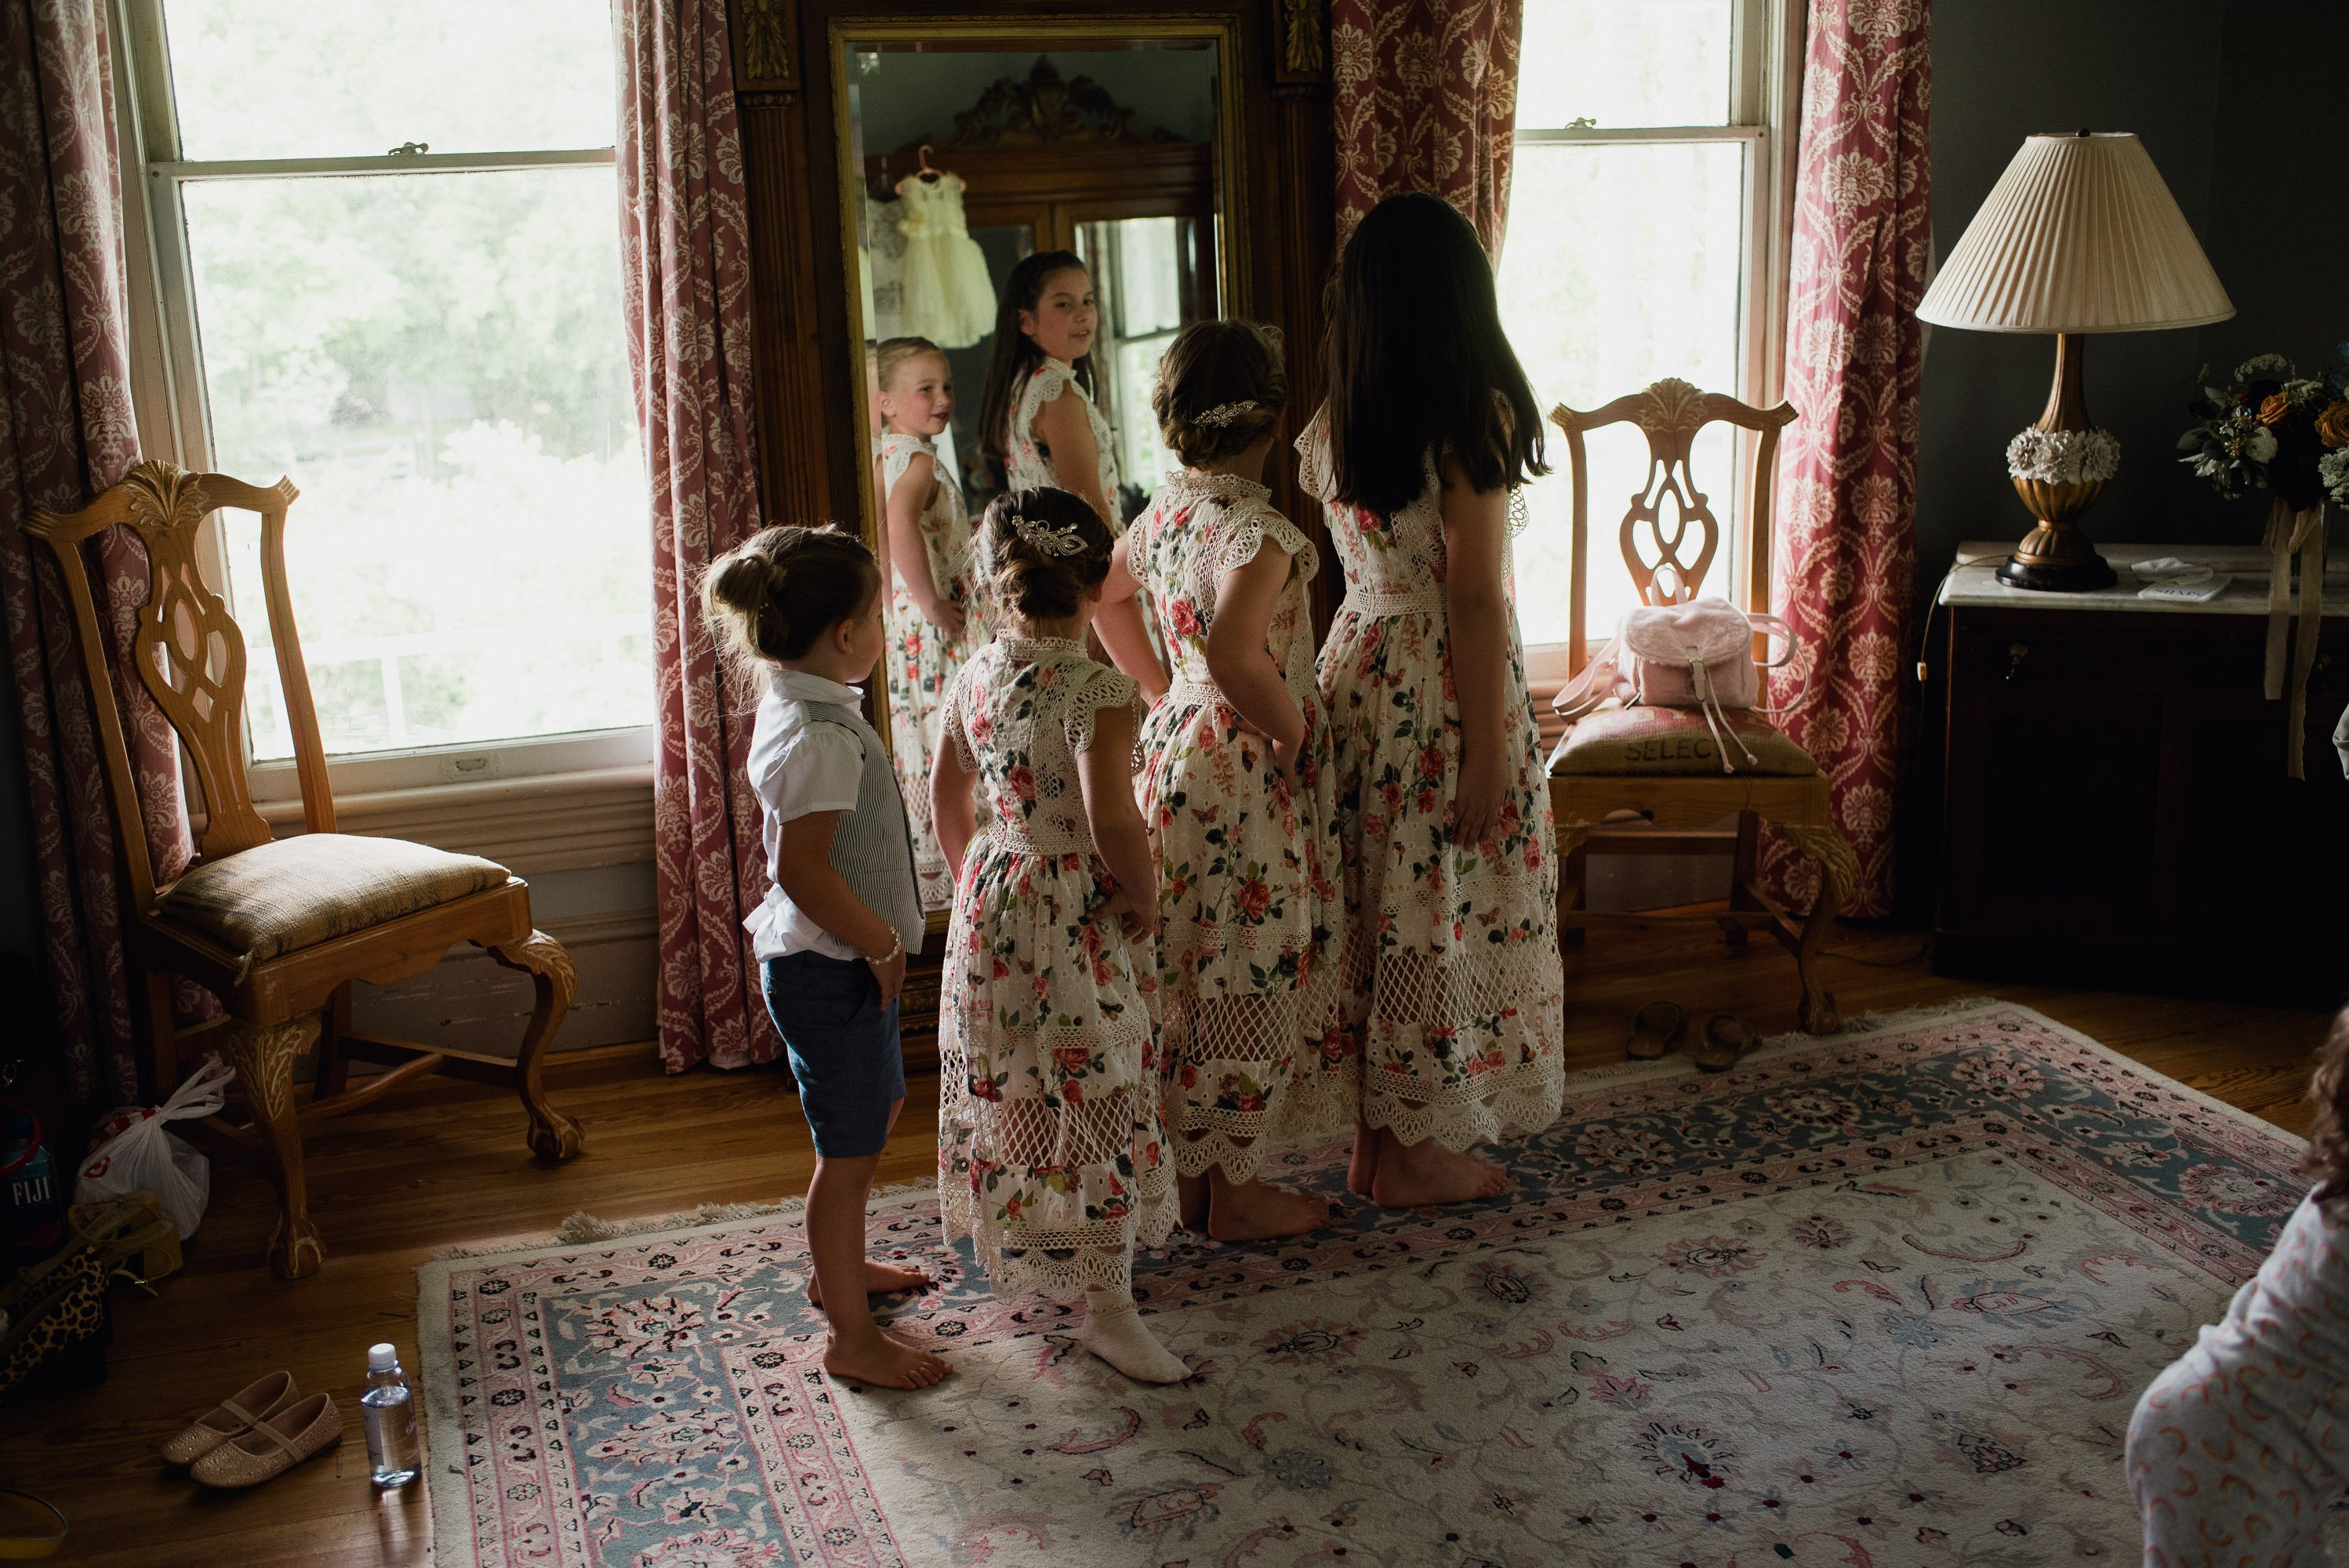 flower girls practice dancing in front of a mirror